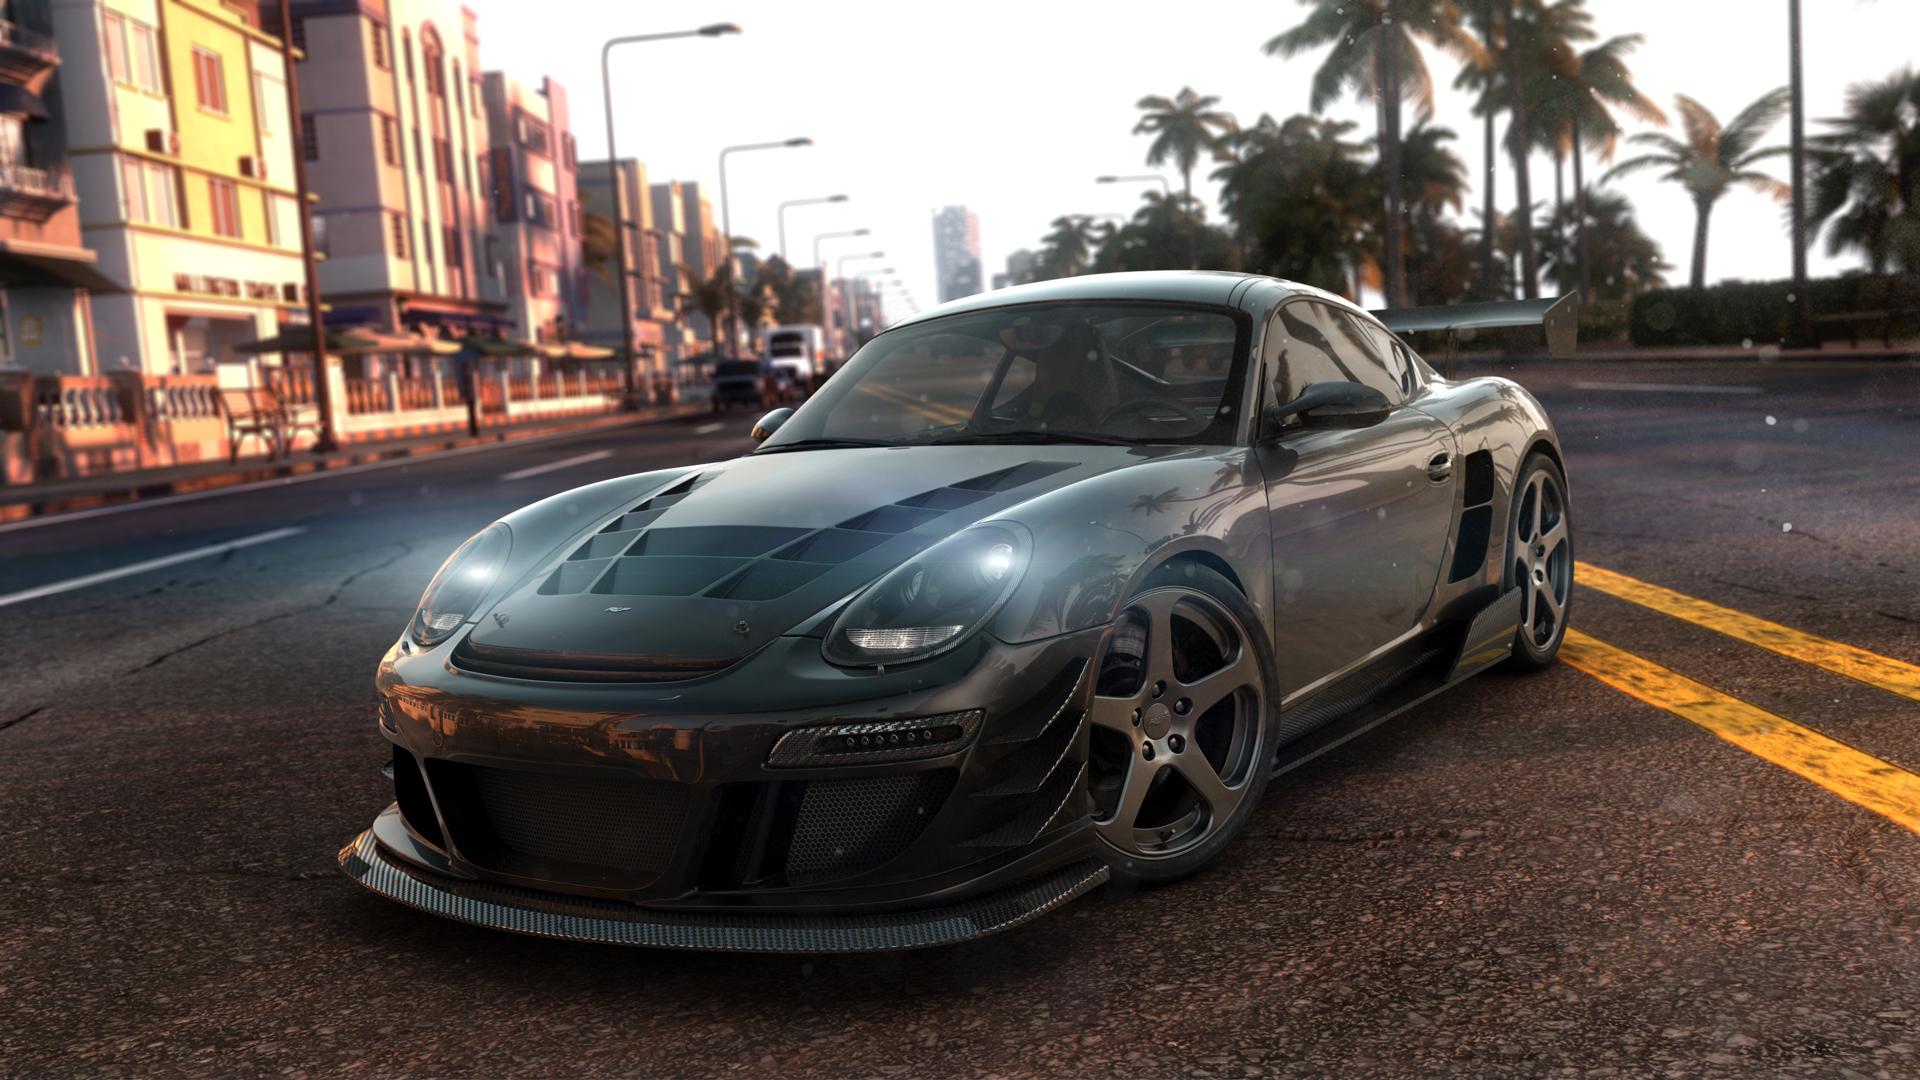 The Crew is a open-world racing game like no other...